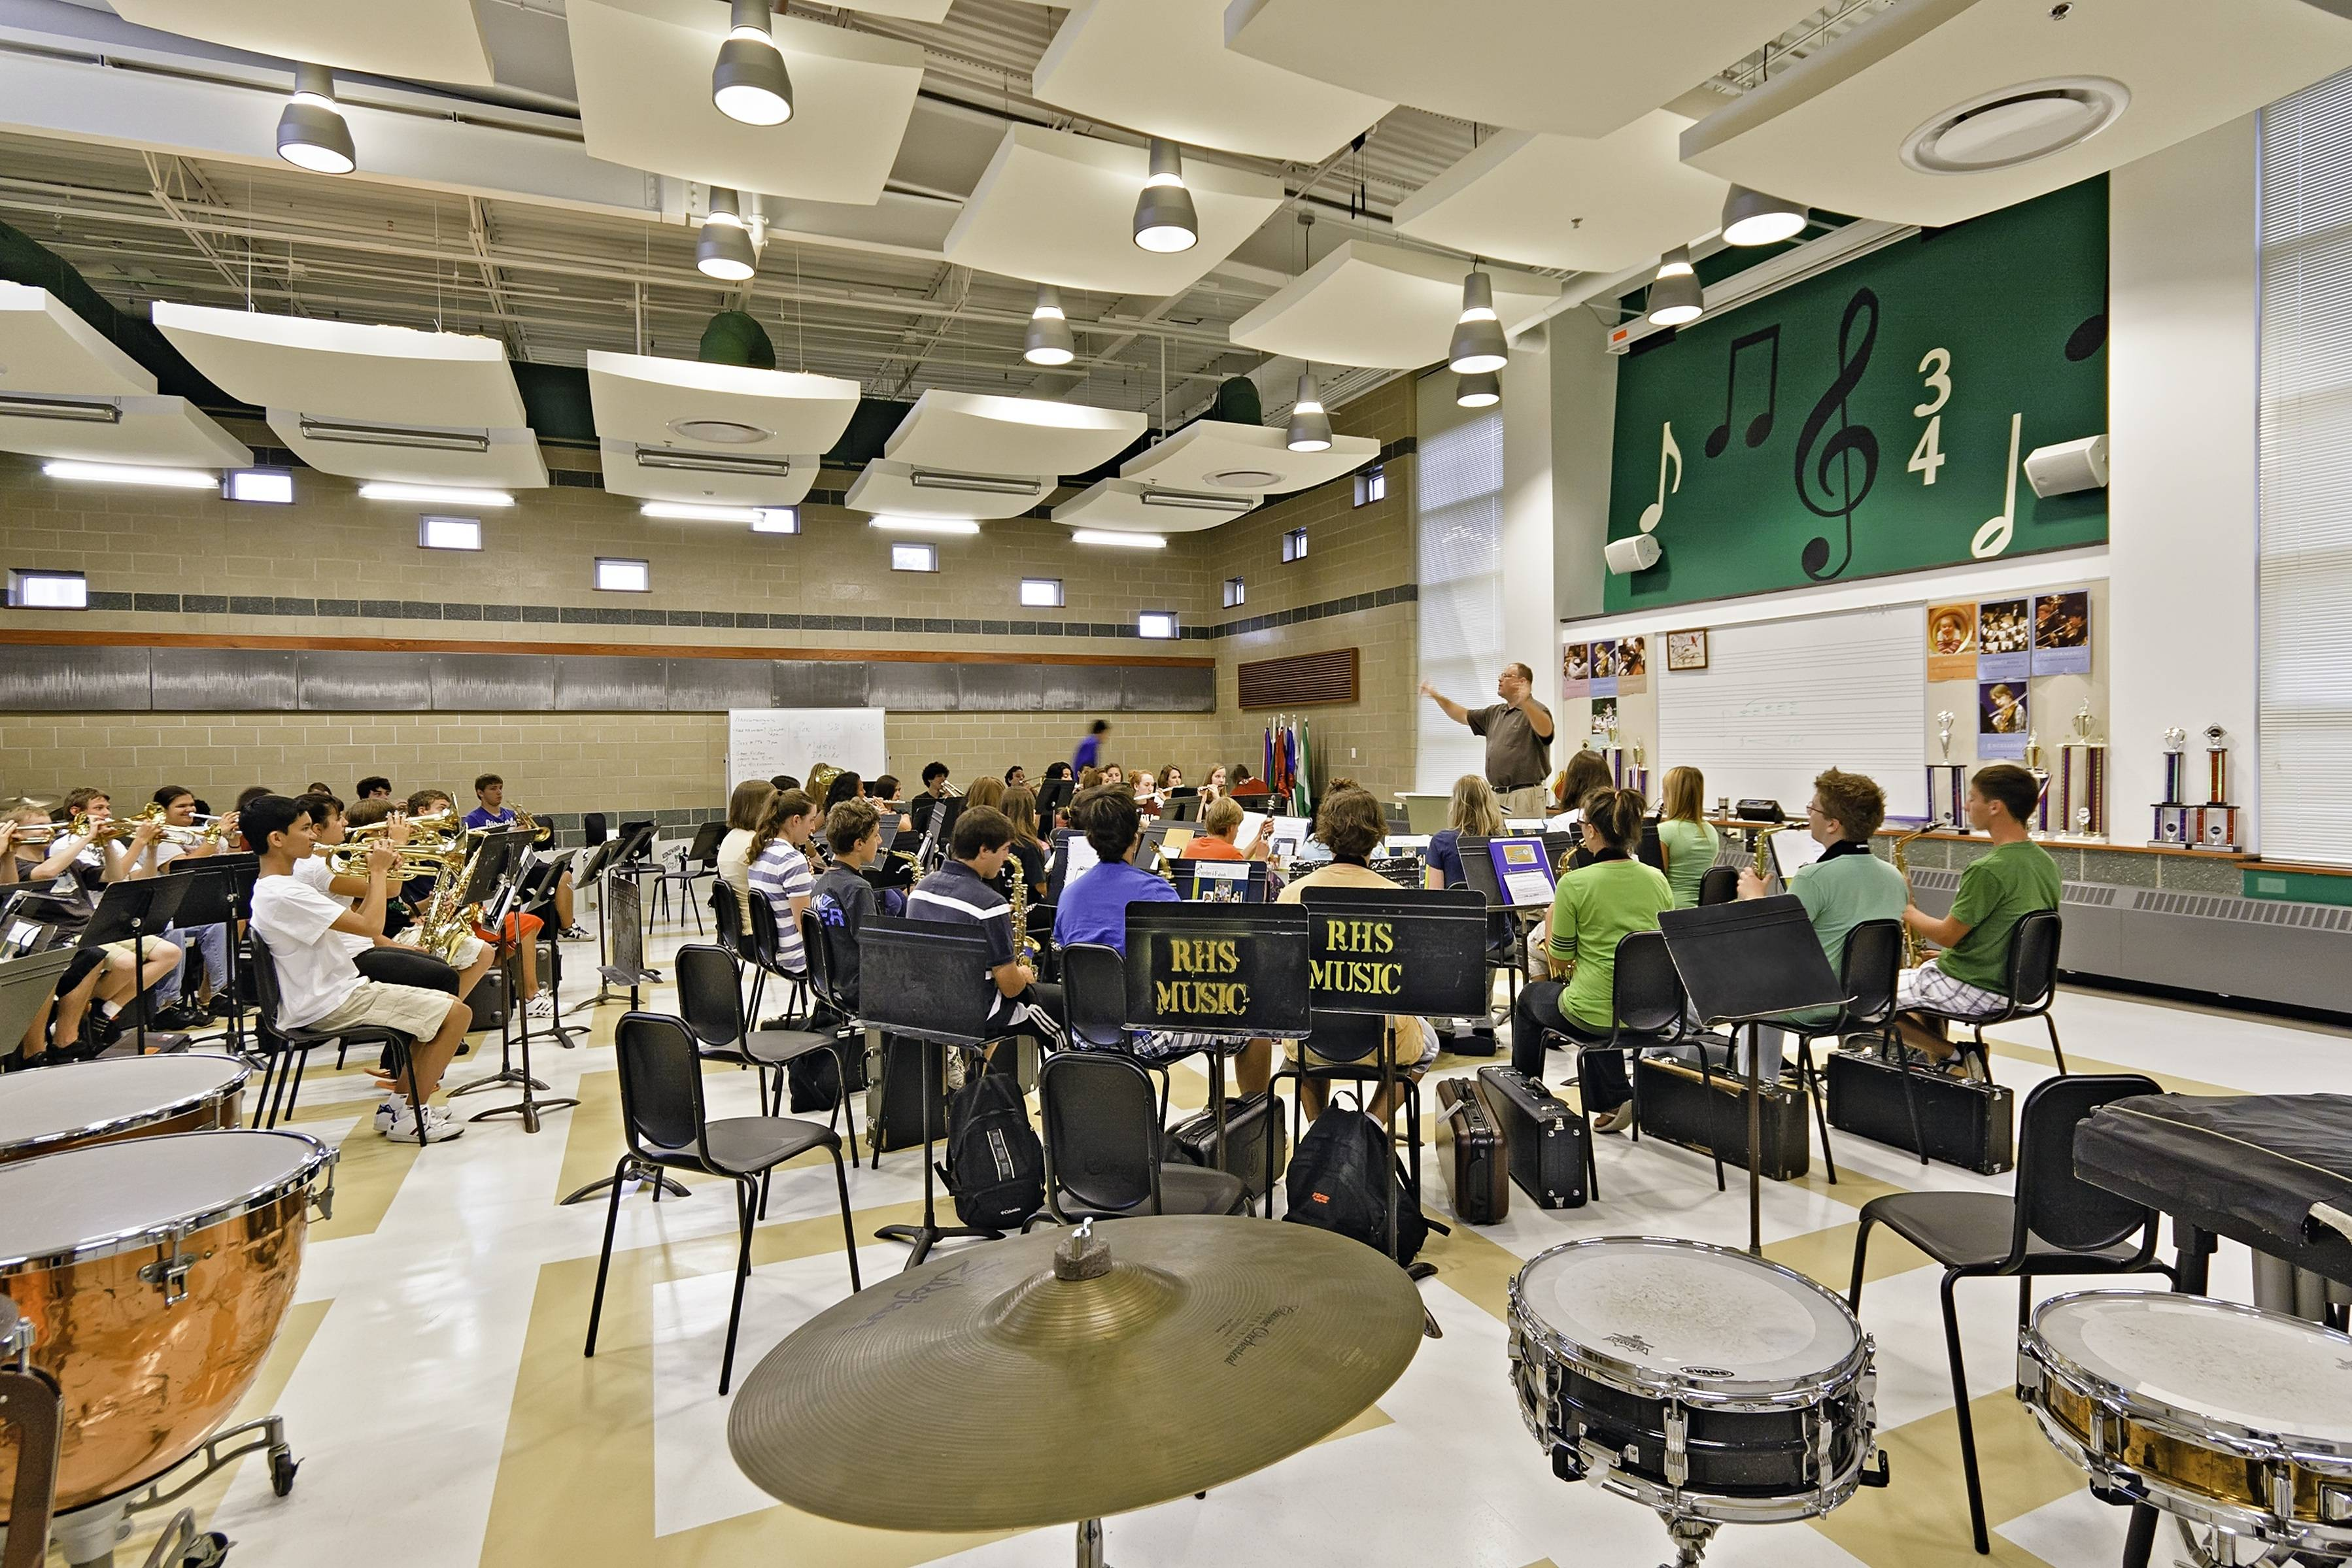 Modern band room design at Ridgewood High School by DLA Architects